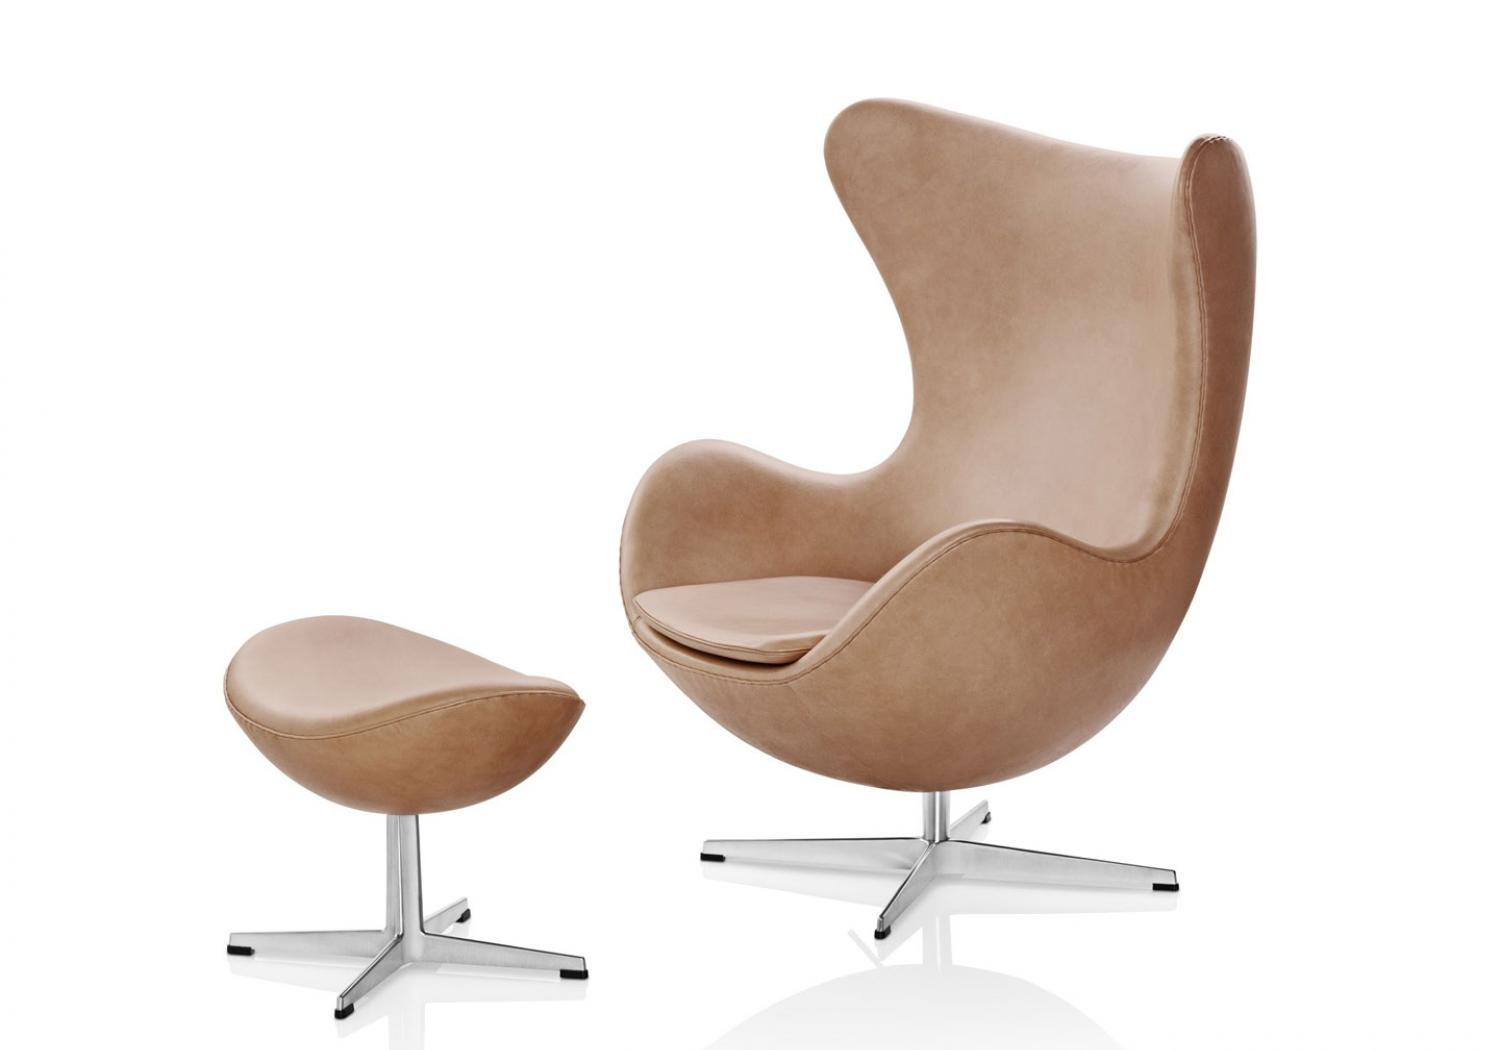 Her Royal Highness Princess Benedikte of Denmark - Fritz Hansen Egg chair